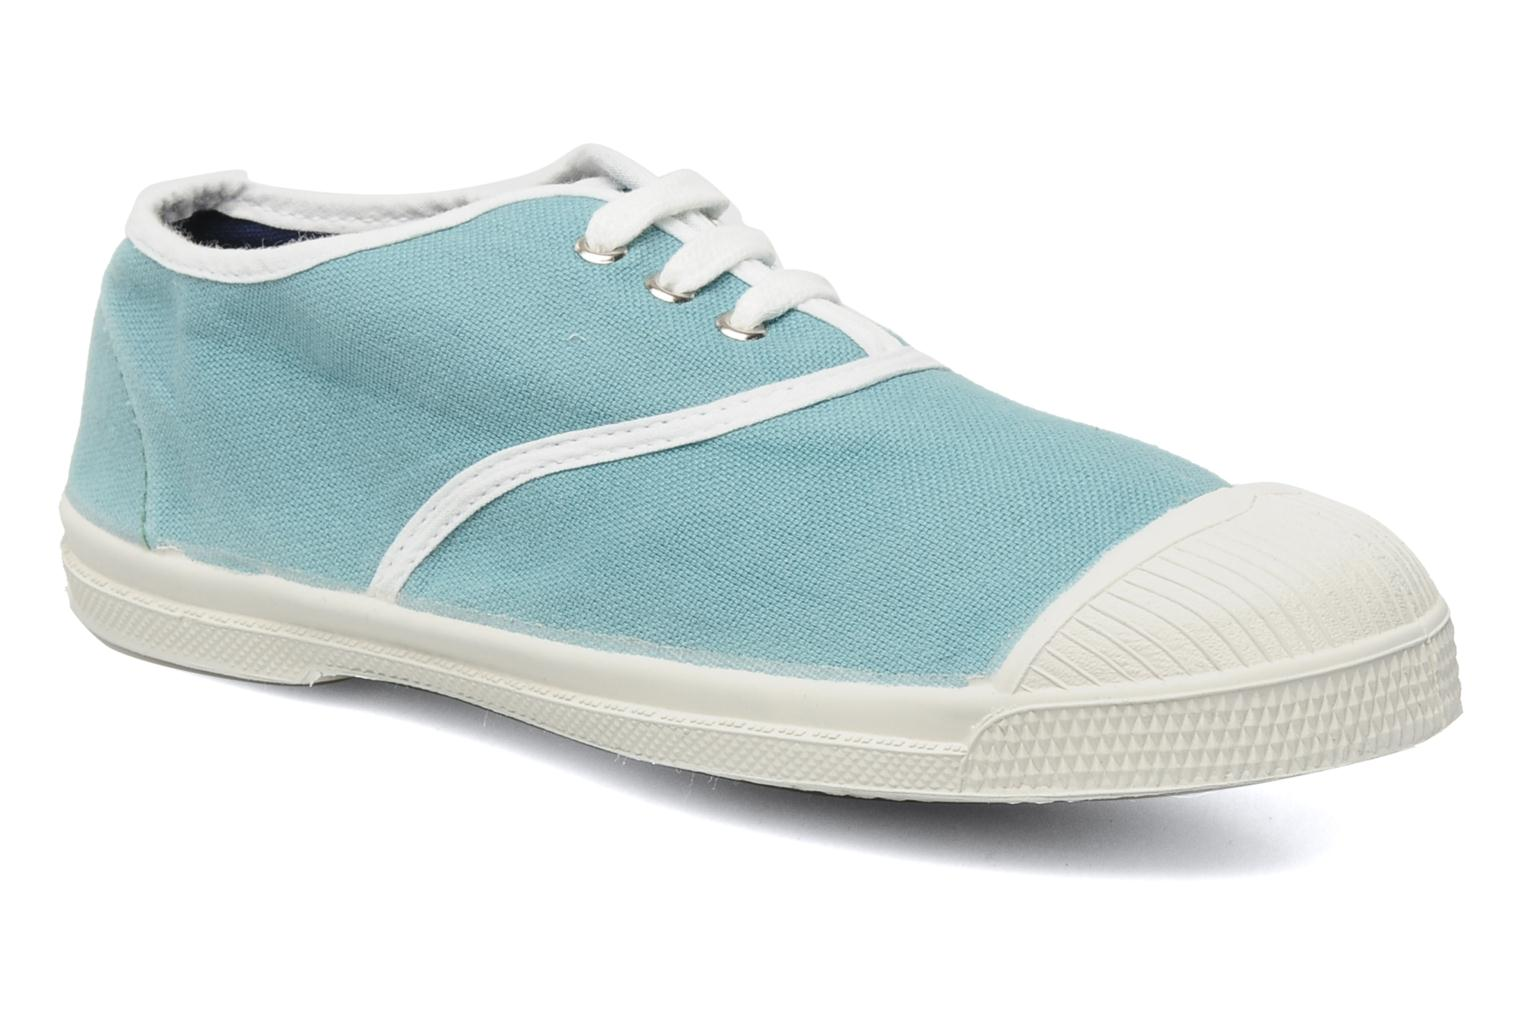 Tennis Colorpiping E Turquoise